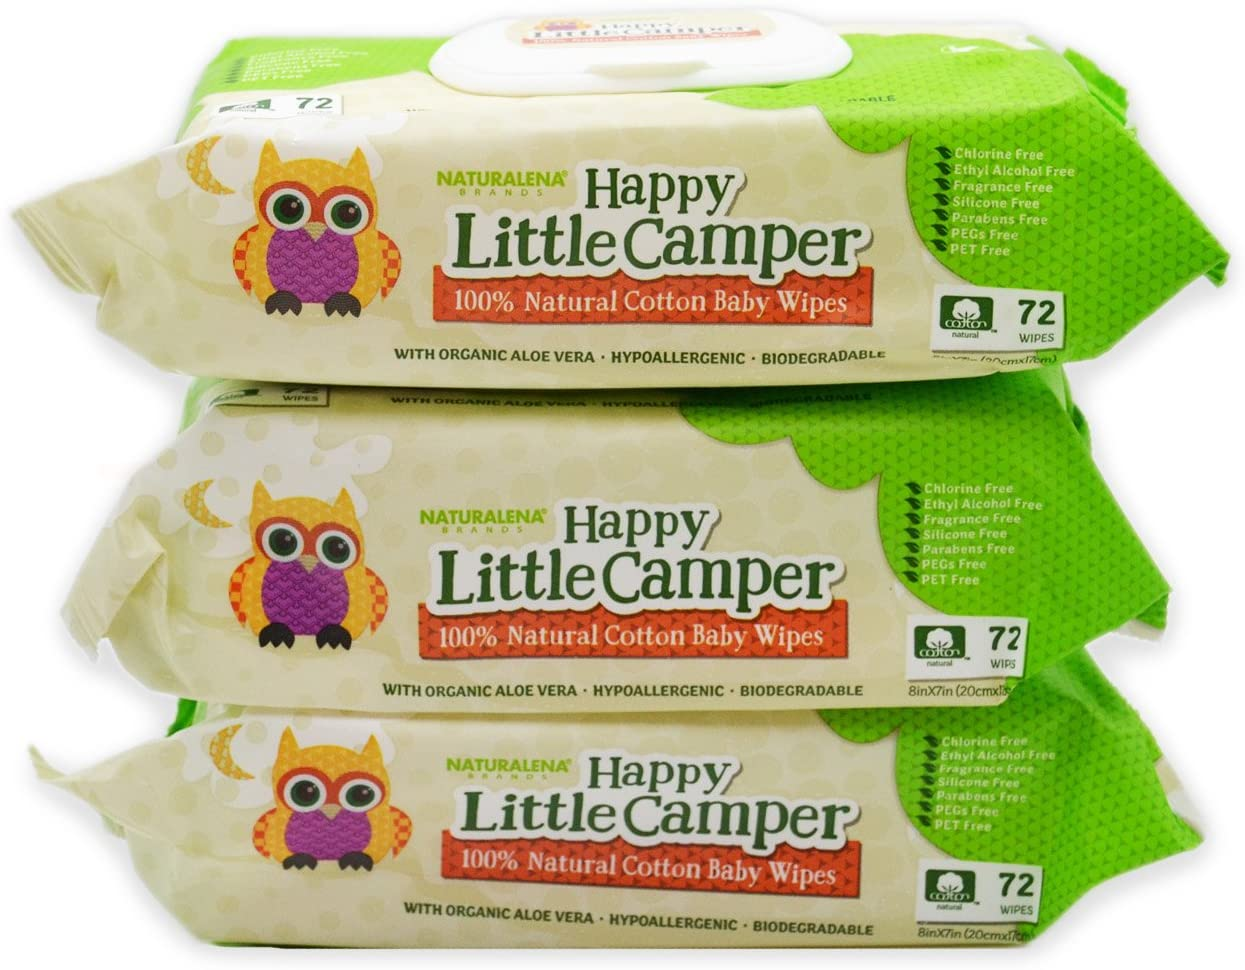 Happy Little Camper Natural Cotton Baby Wipes